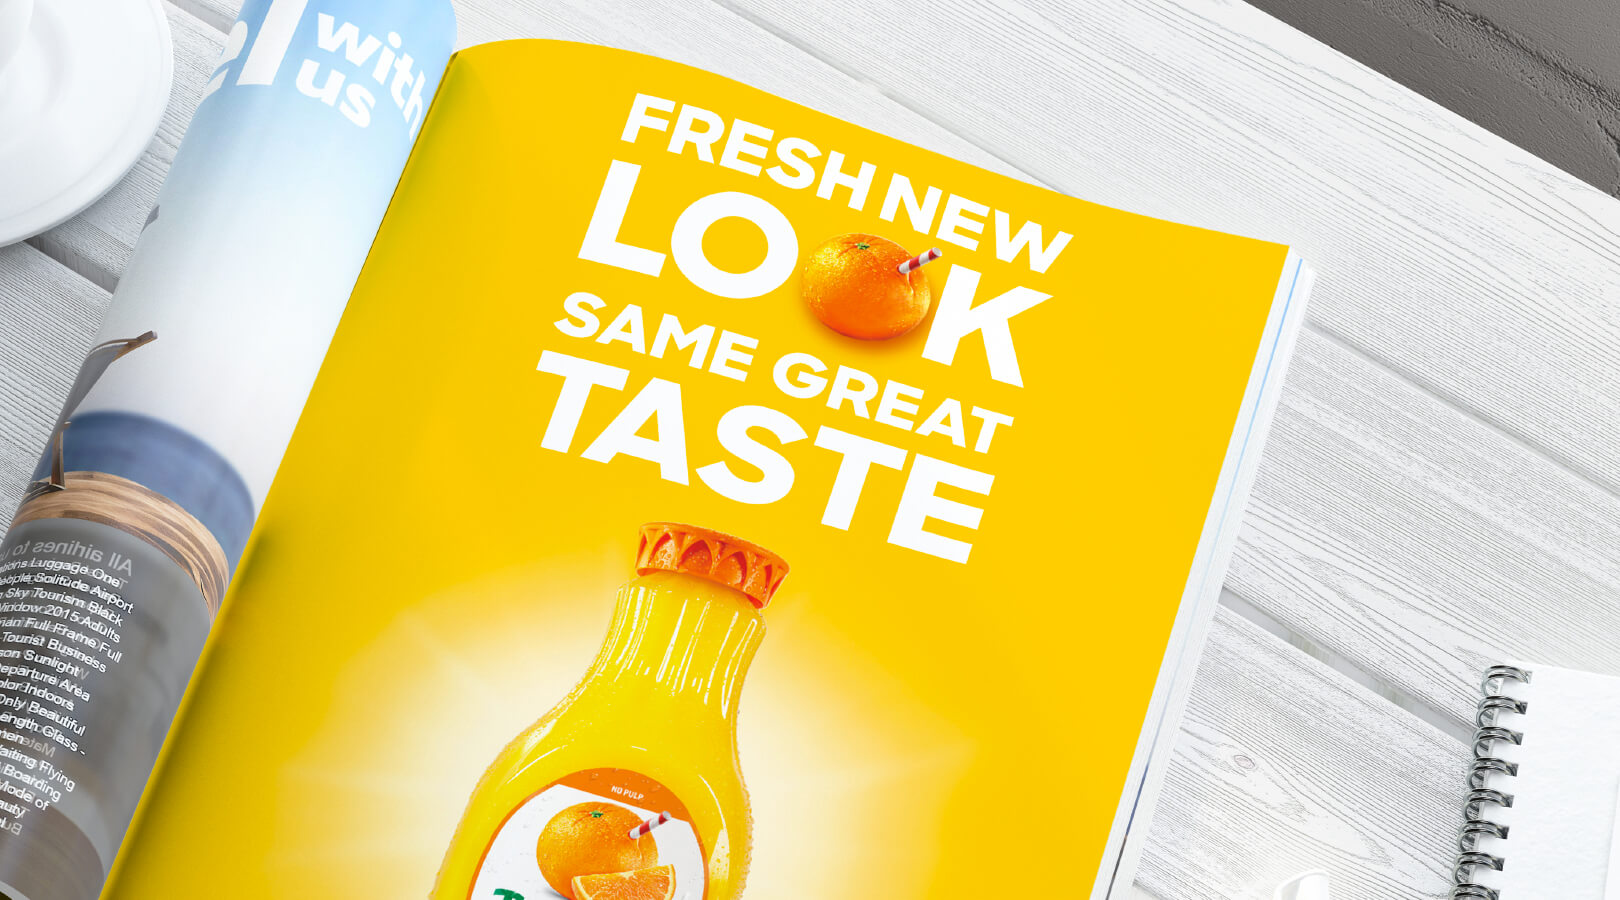 Tropicana Fresh New Look Same Great Taste Magazine Advertisement